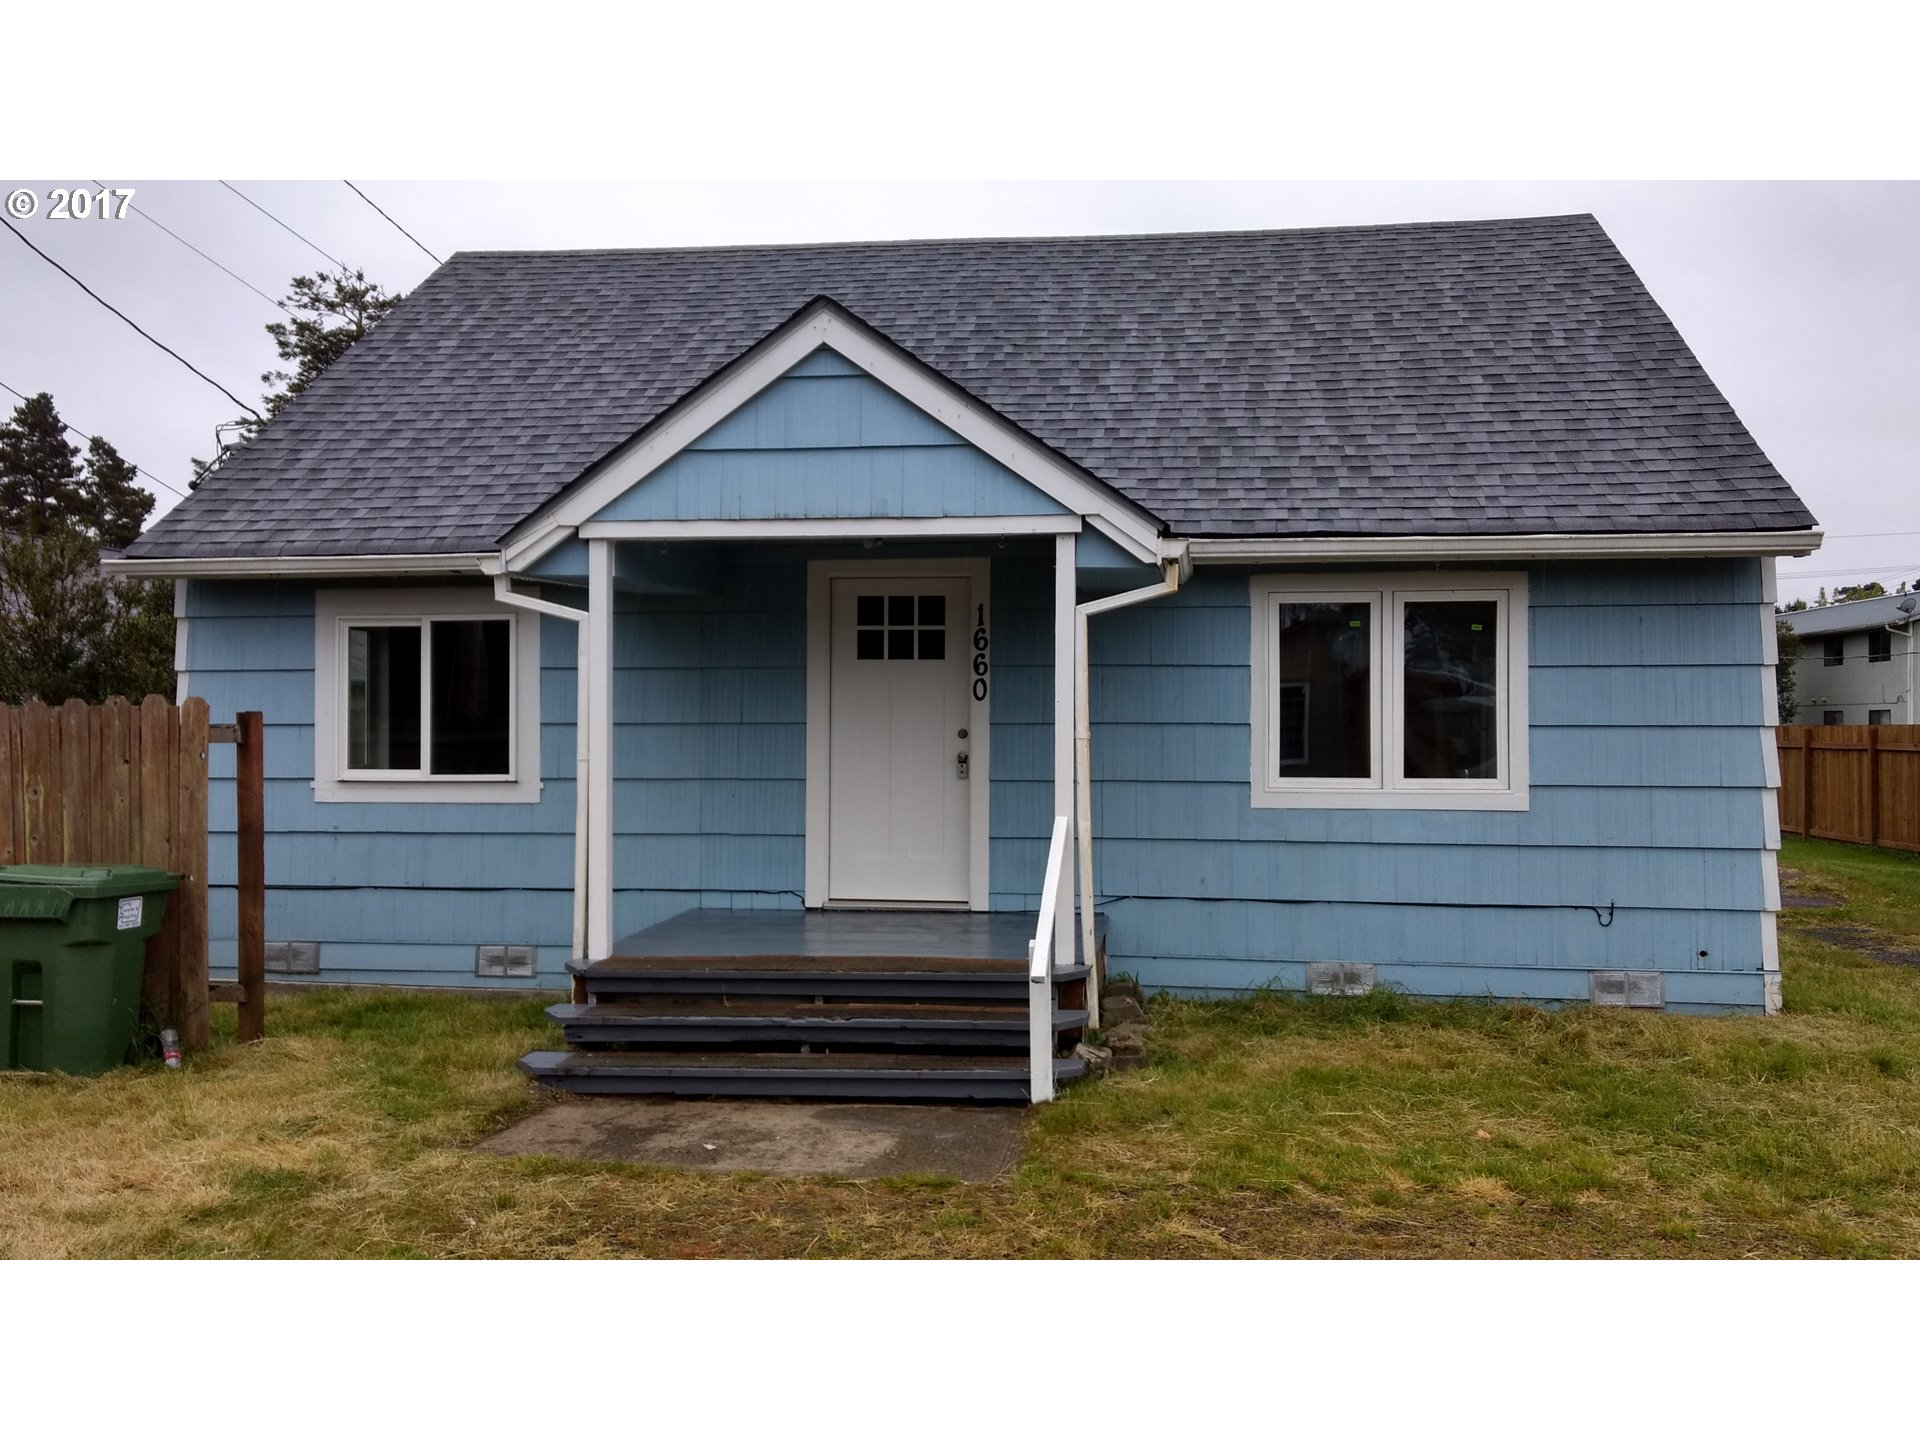 1660 36TH ST Florence, OR 97439 - MLS #: 17622011